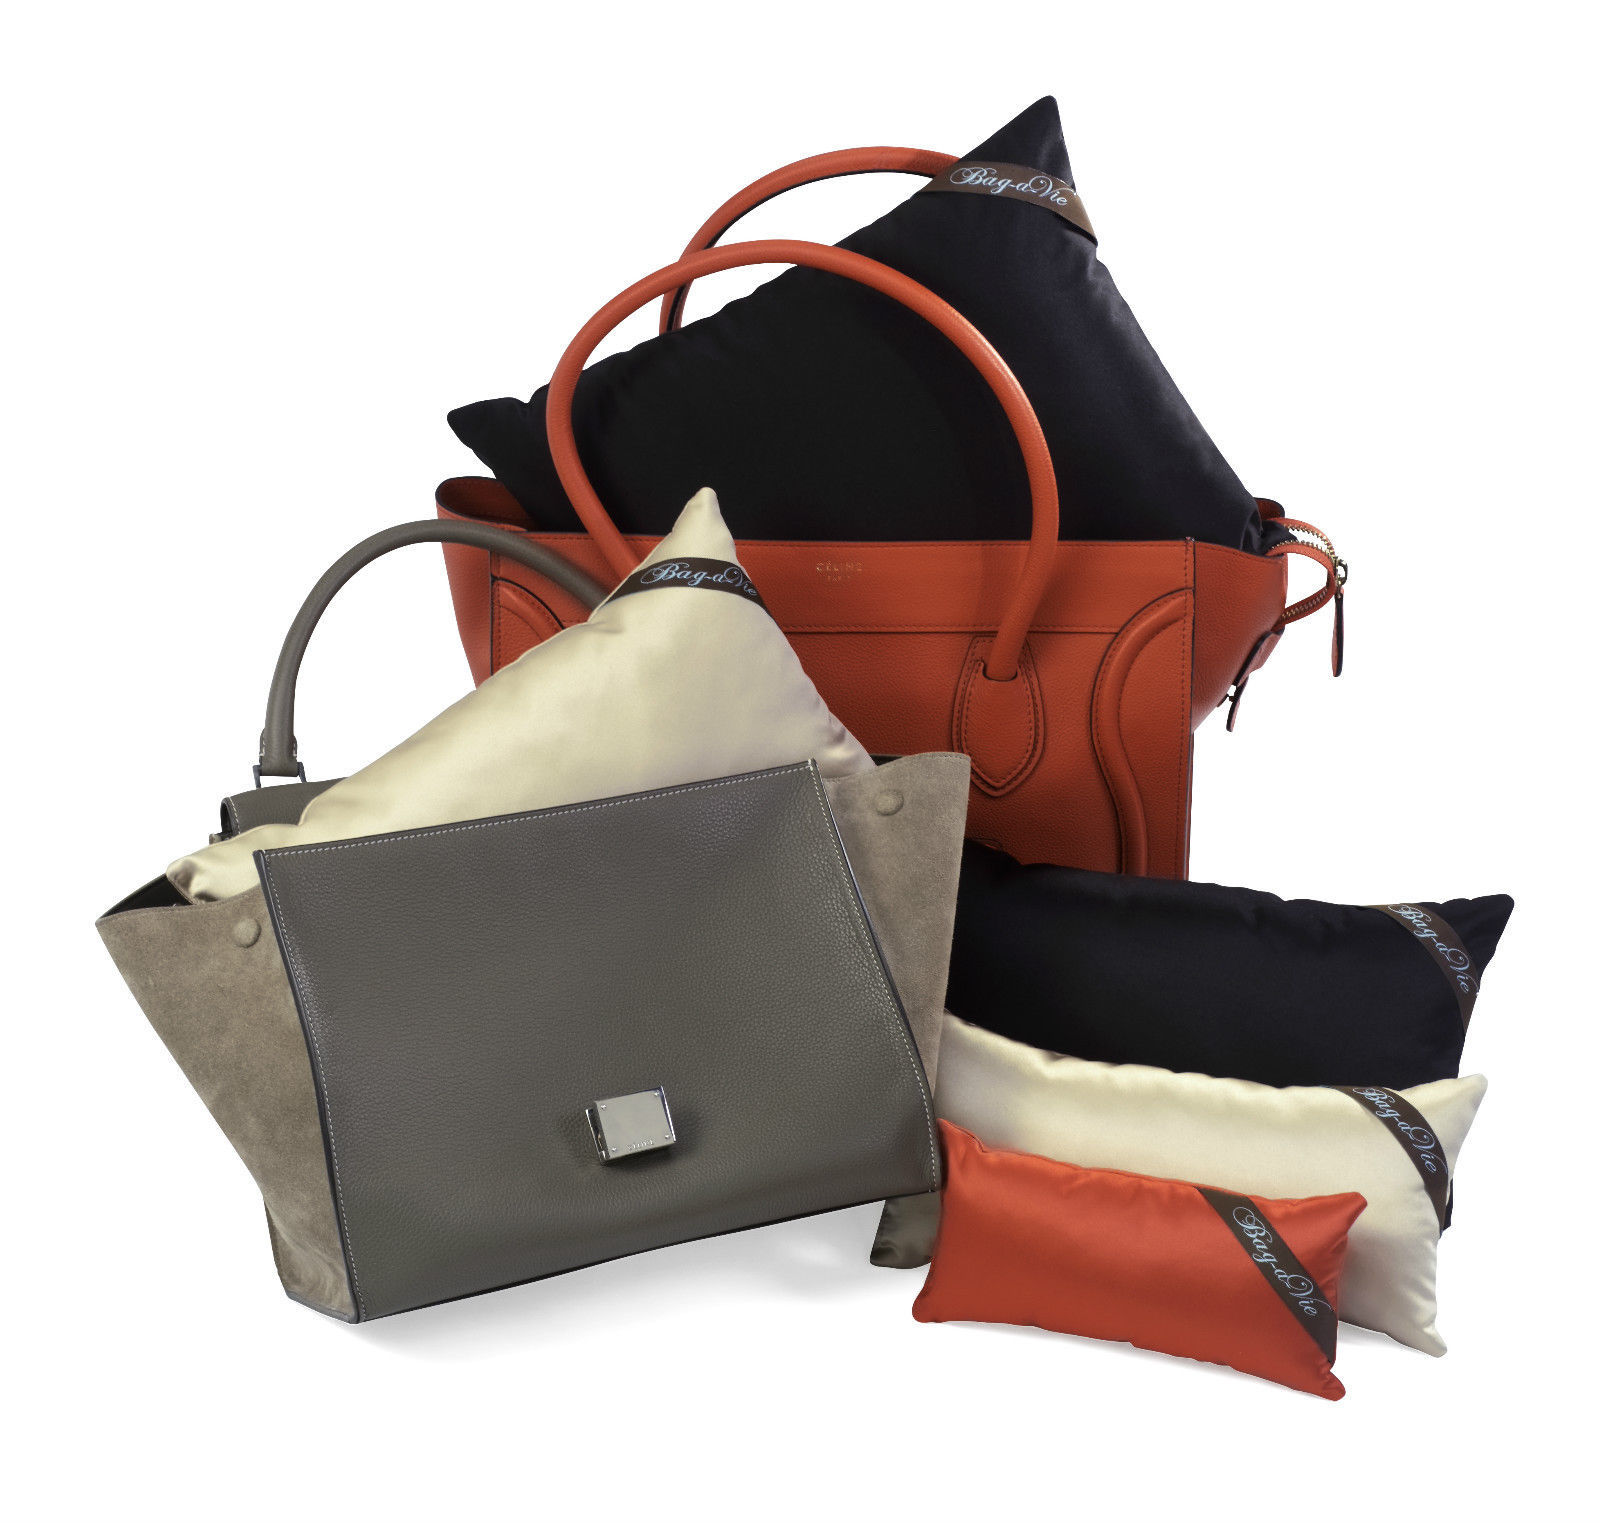 Primary image for Bag-a-Vie Pillows Inserts Fits Hermes Celine Protect Designer Handbags Medi